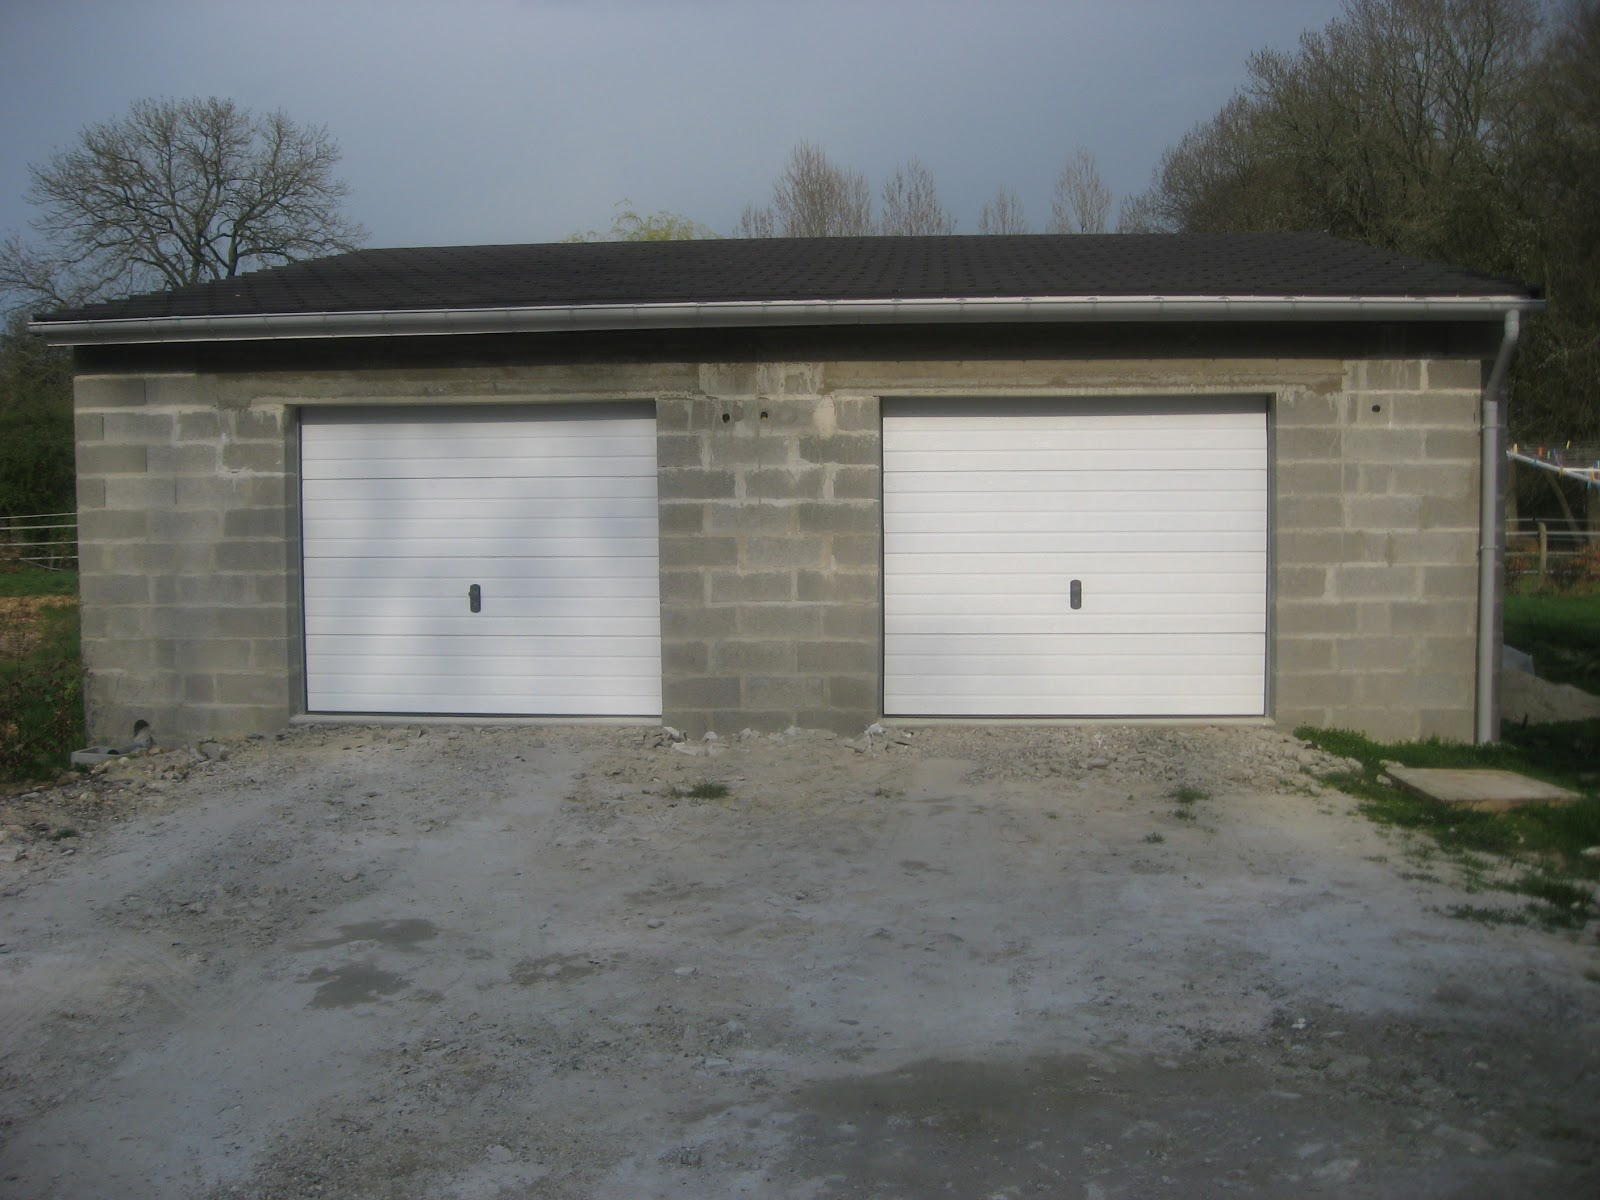 Maison de j r me et laetitia for Budget pour construction garage